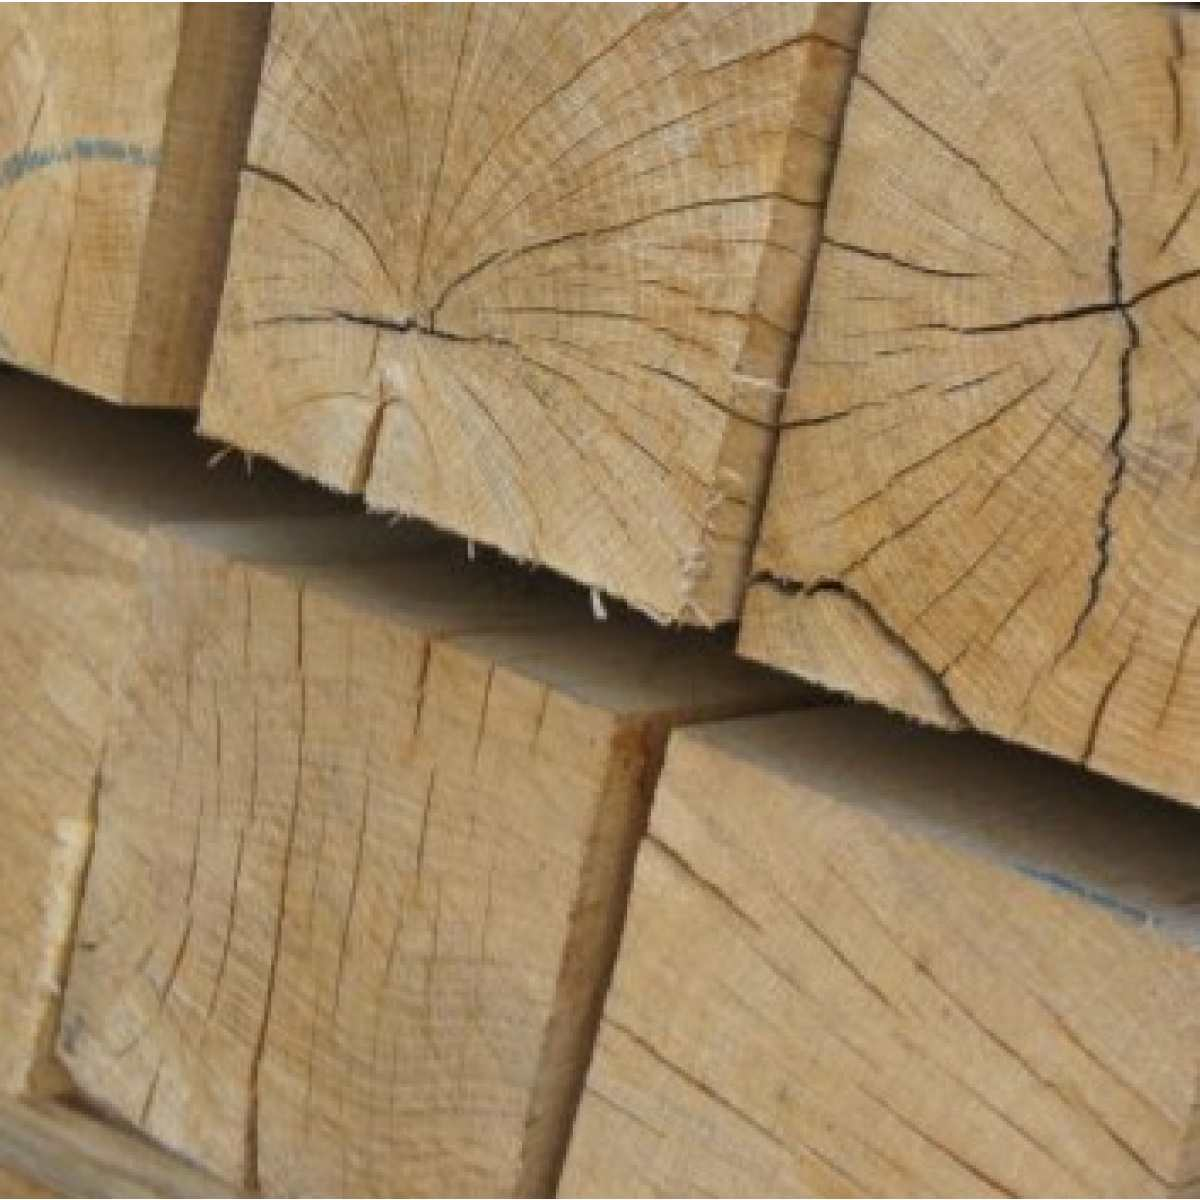 GreenOak 1 e1624280281993 Image by Websters Timber